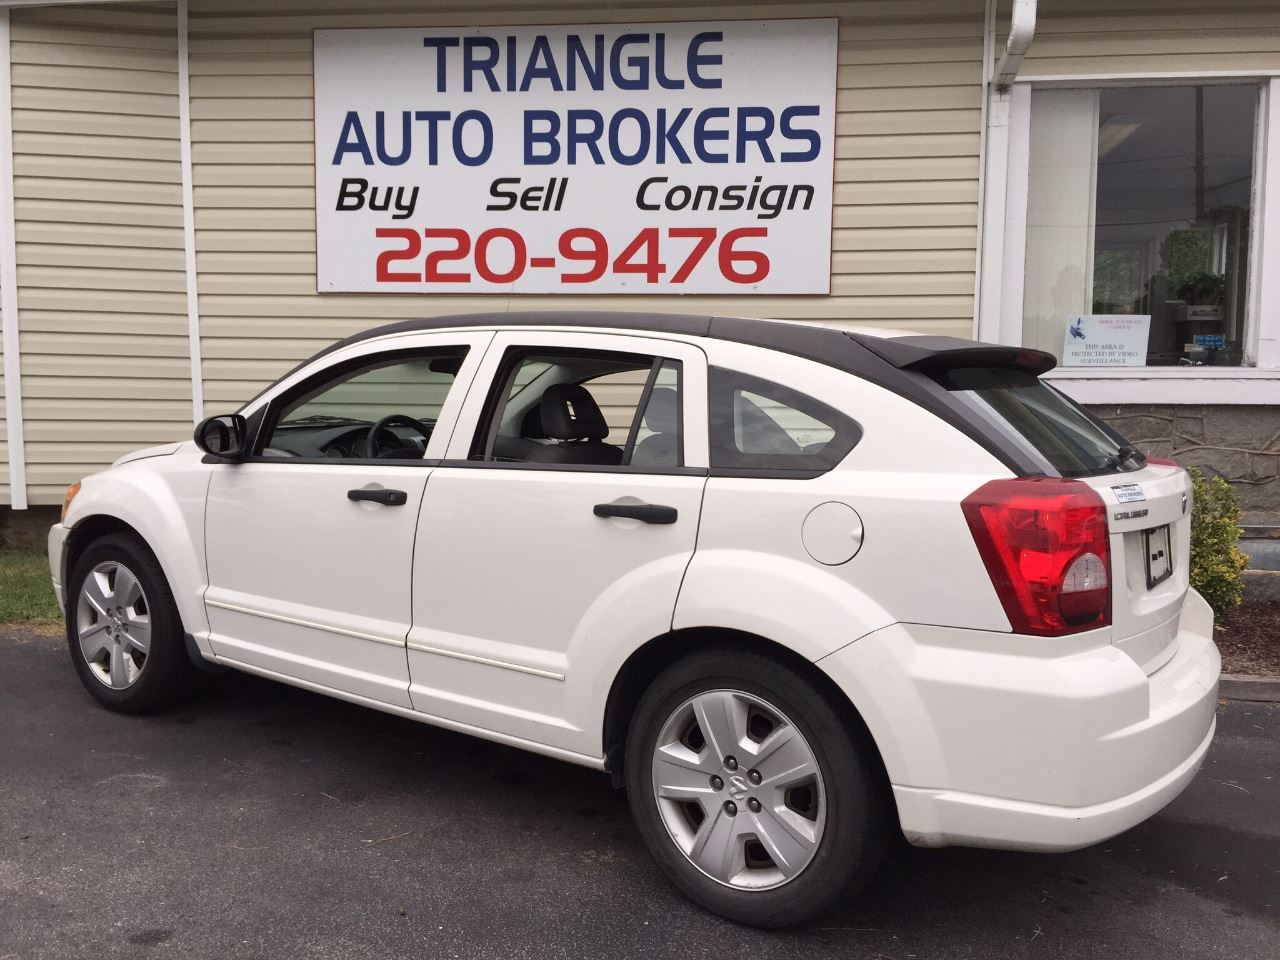 2007 dodge caliber sxt 4dr wagon in durham nc triangle auto brokers. Black Bedroom Furniture Sets. Home Design Ideas